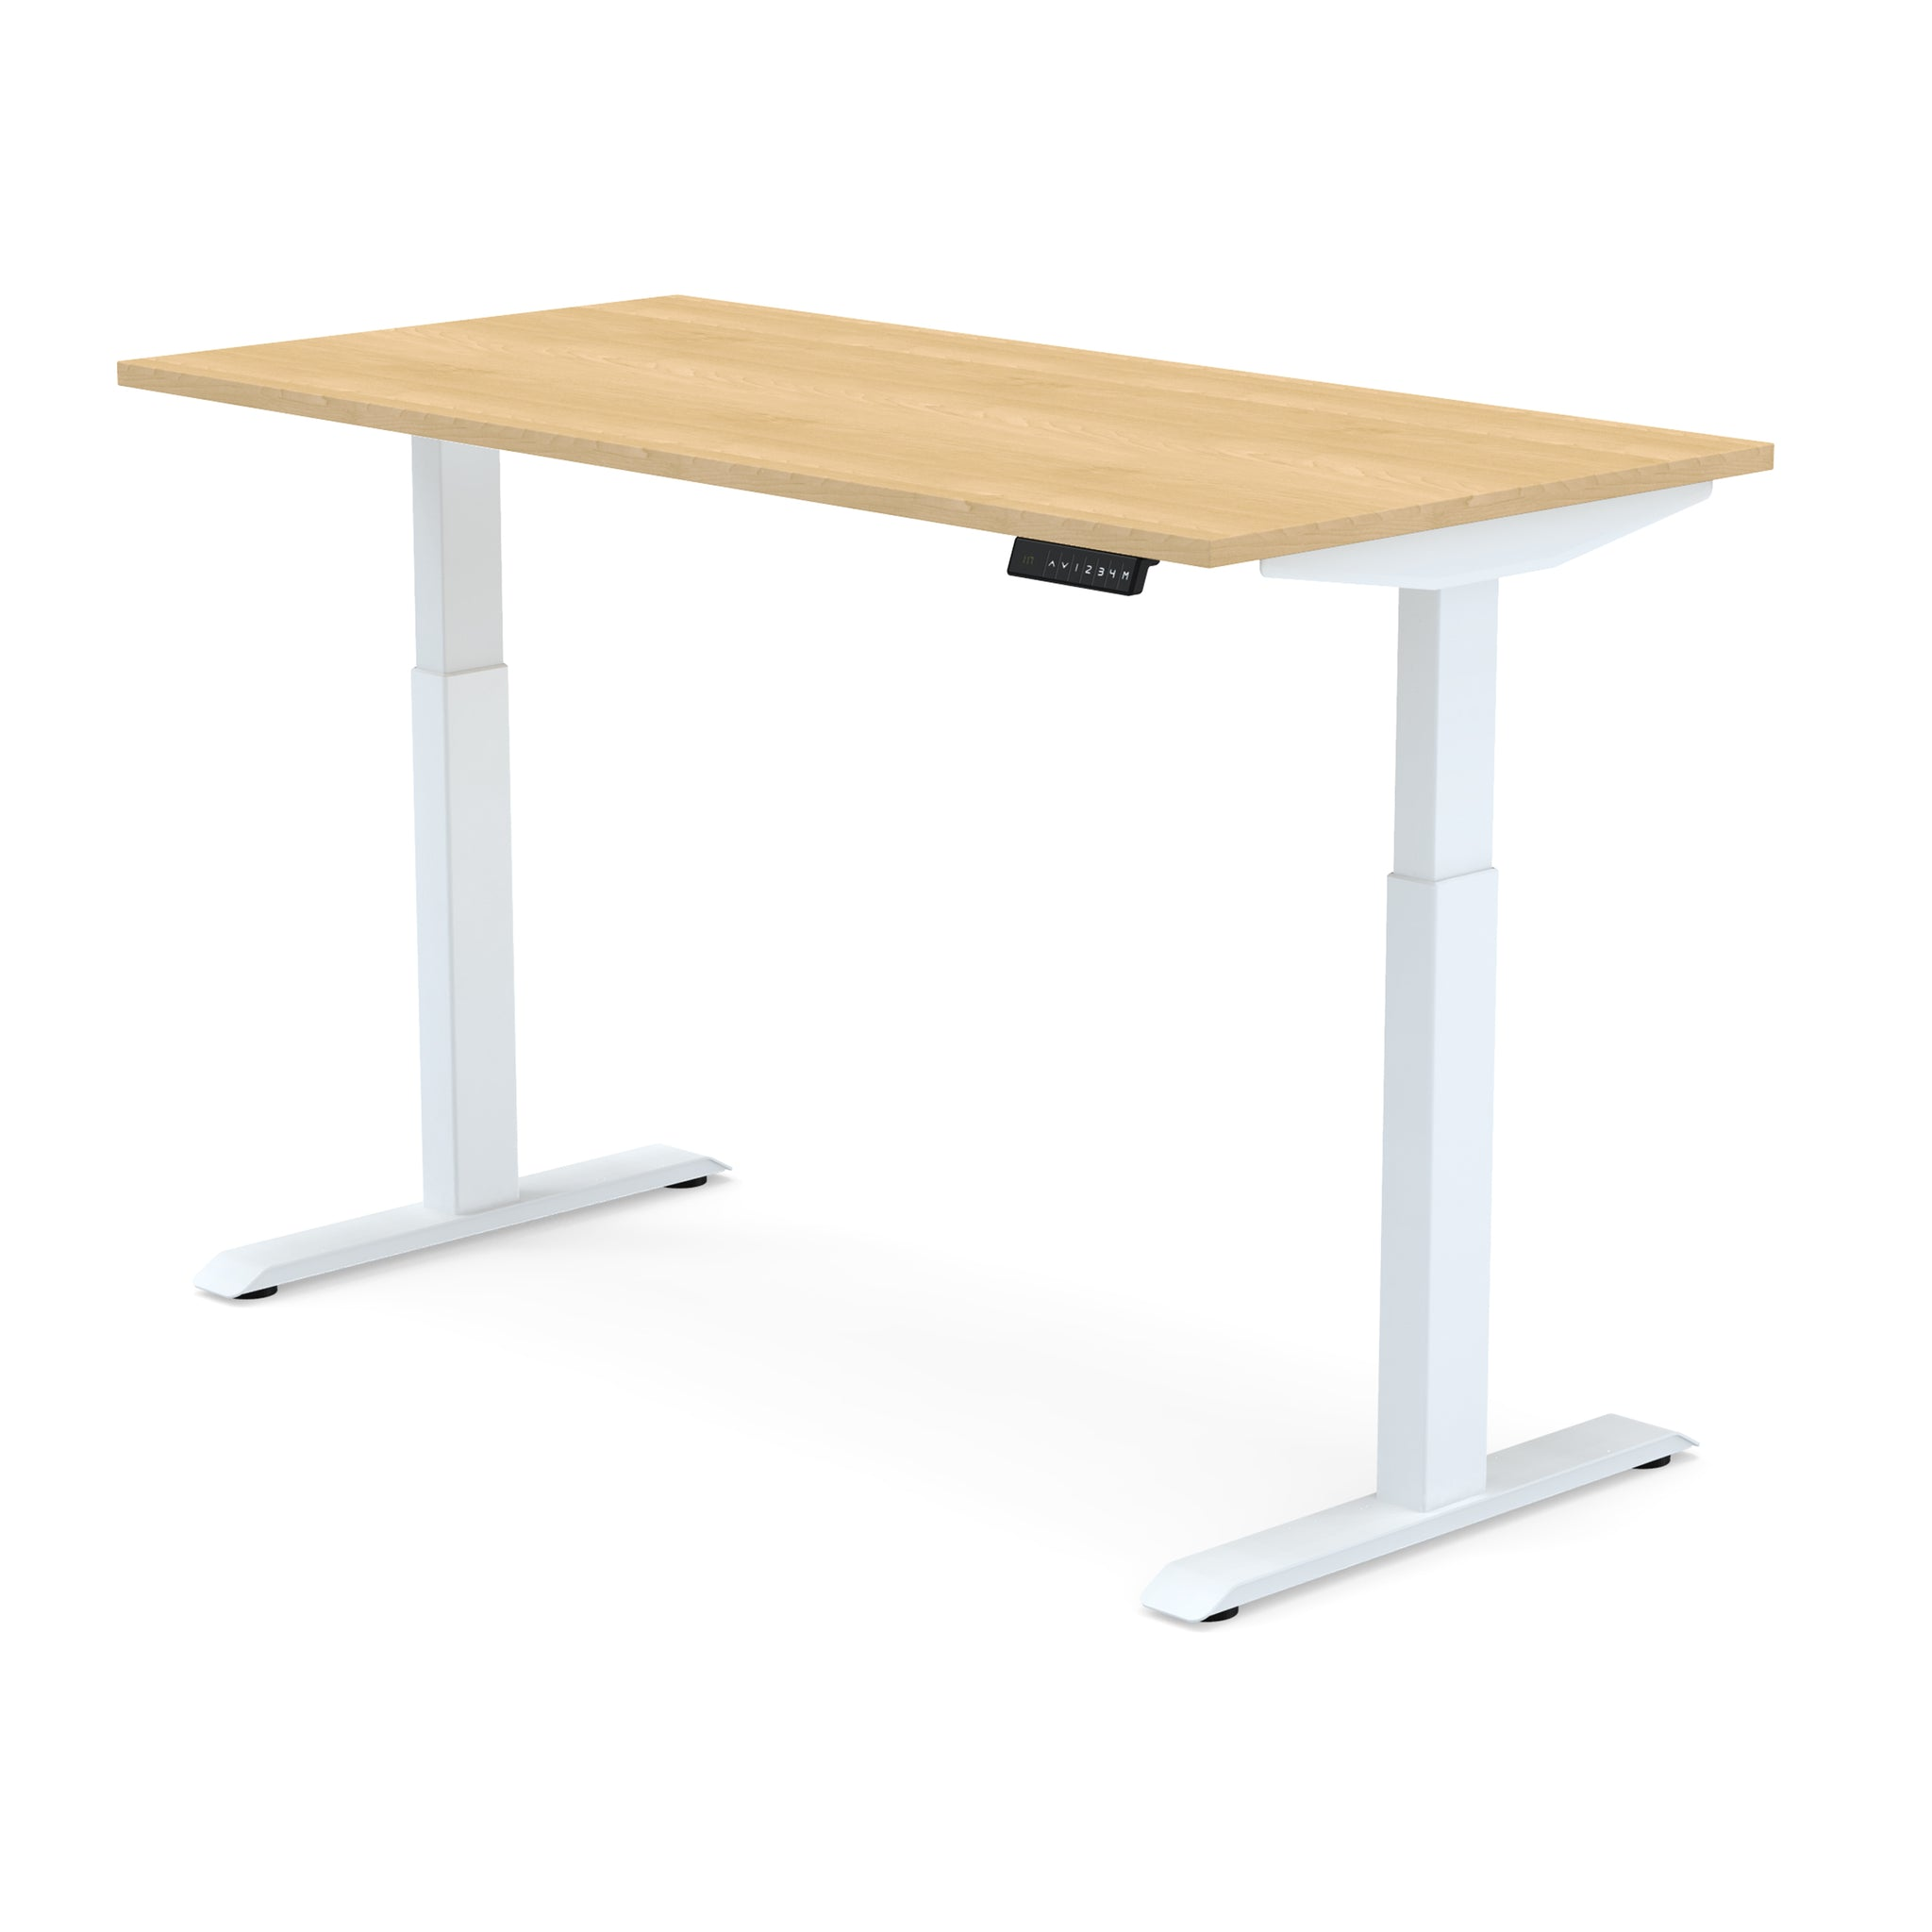 Dual Motor | Height-Adjustable Desk with Maple Laminate Table-Top (2 Stage)